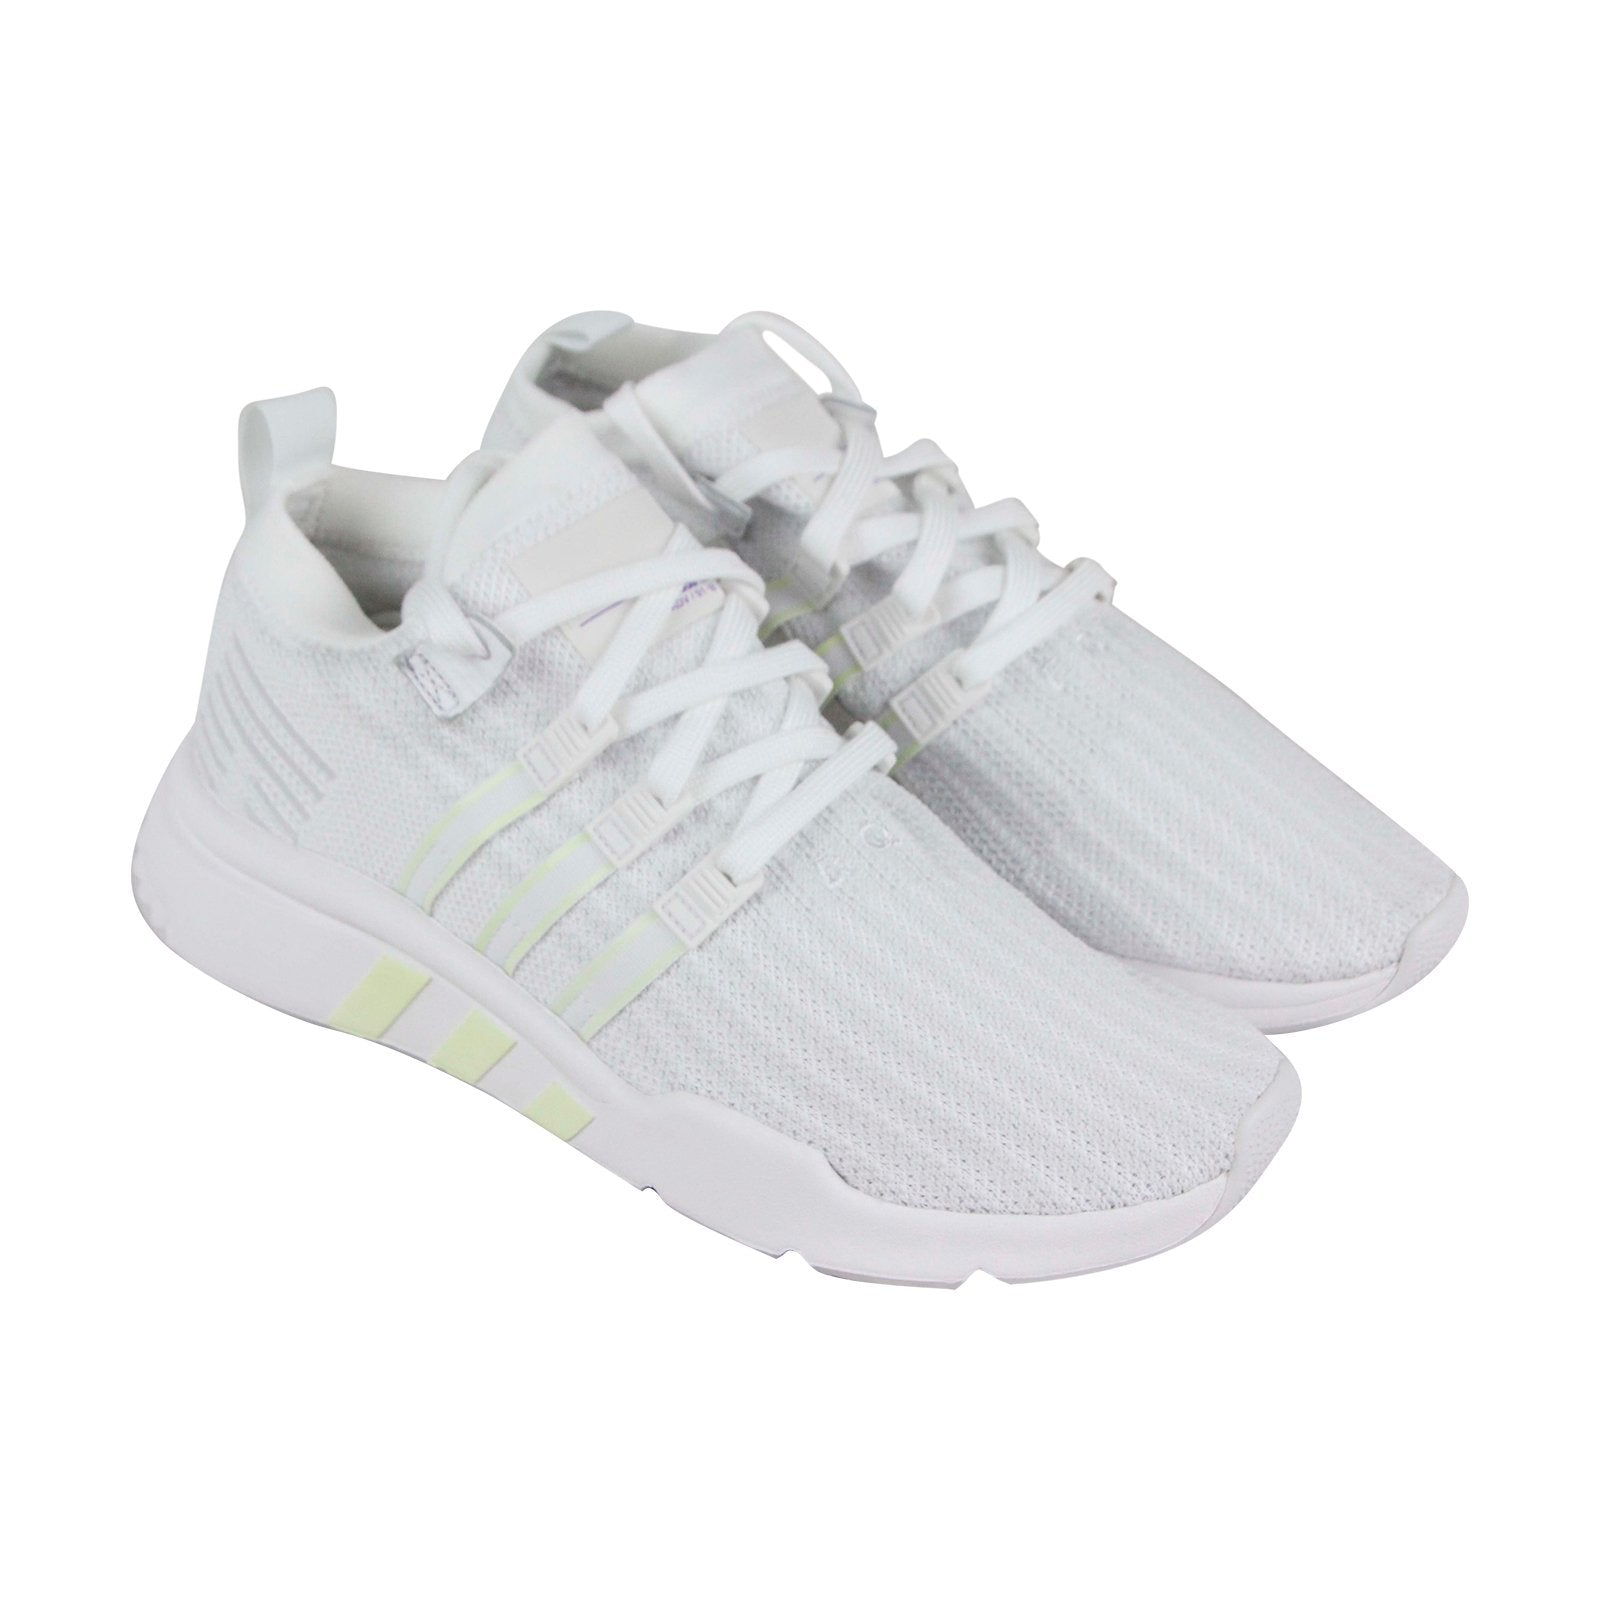 buy online fc436 d2b6d Adidas Eqt Support Mid Adv Mens White Textile Low Top Lace Up Sneakers Shoes